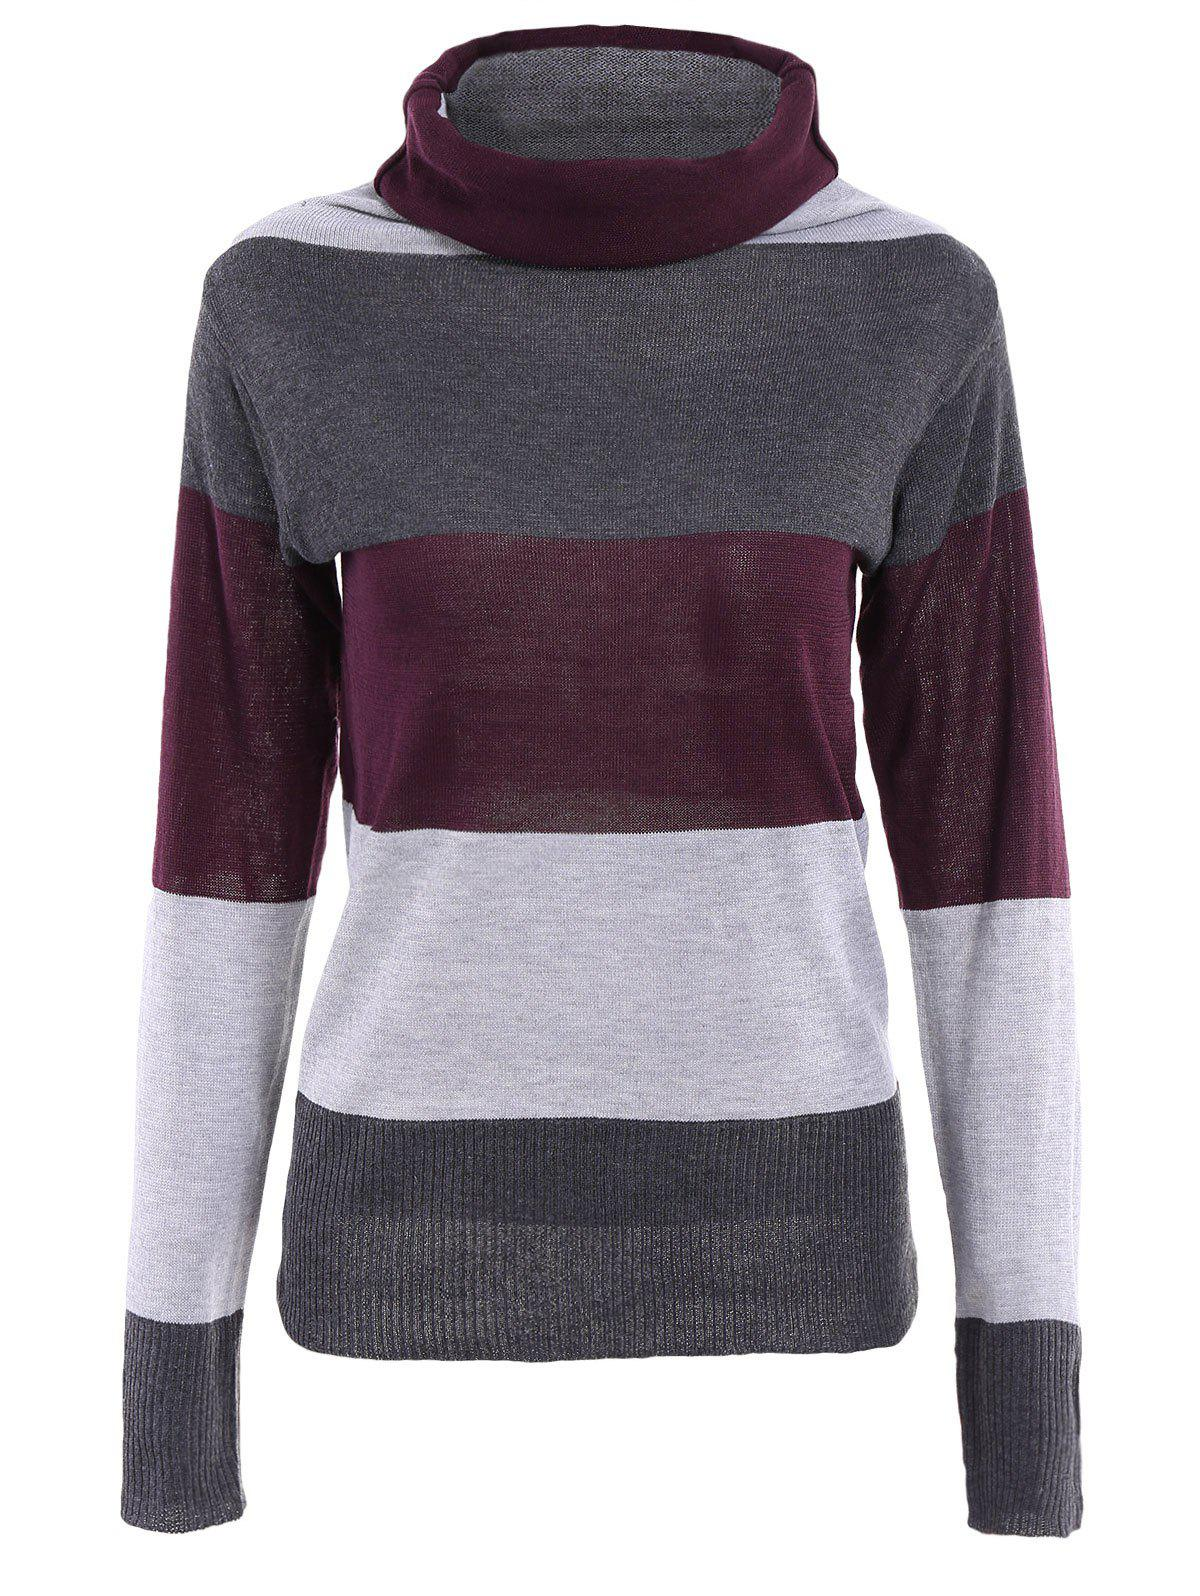 Fashion Color Block Long Sleeves Women's Turtle Neck Sweater - PURPLE ONE SIZE